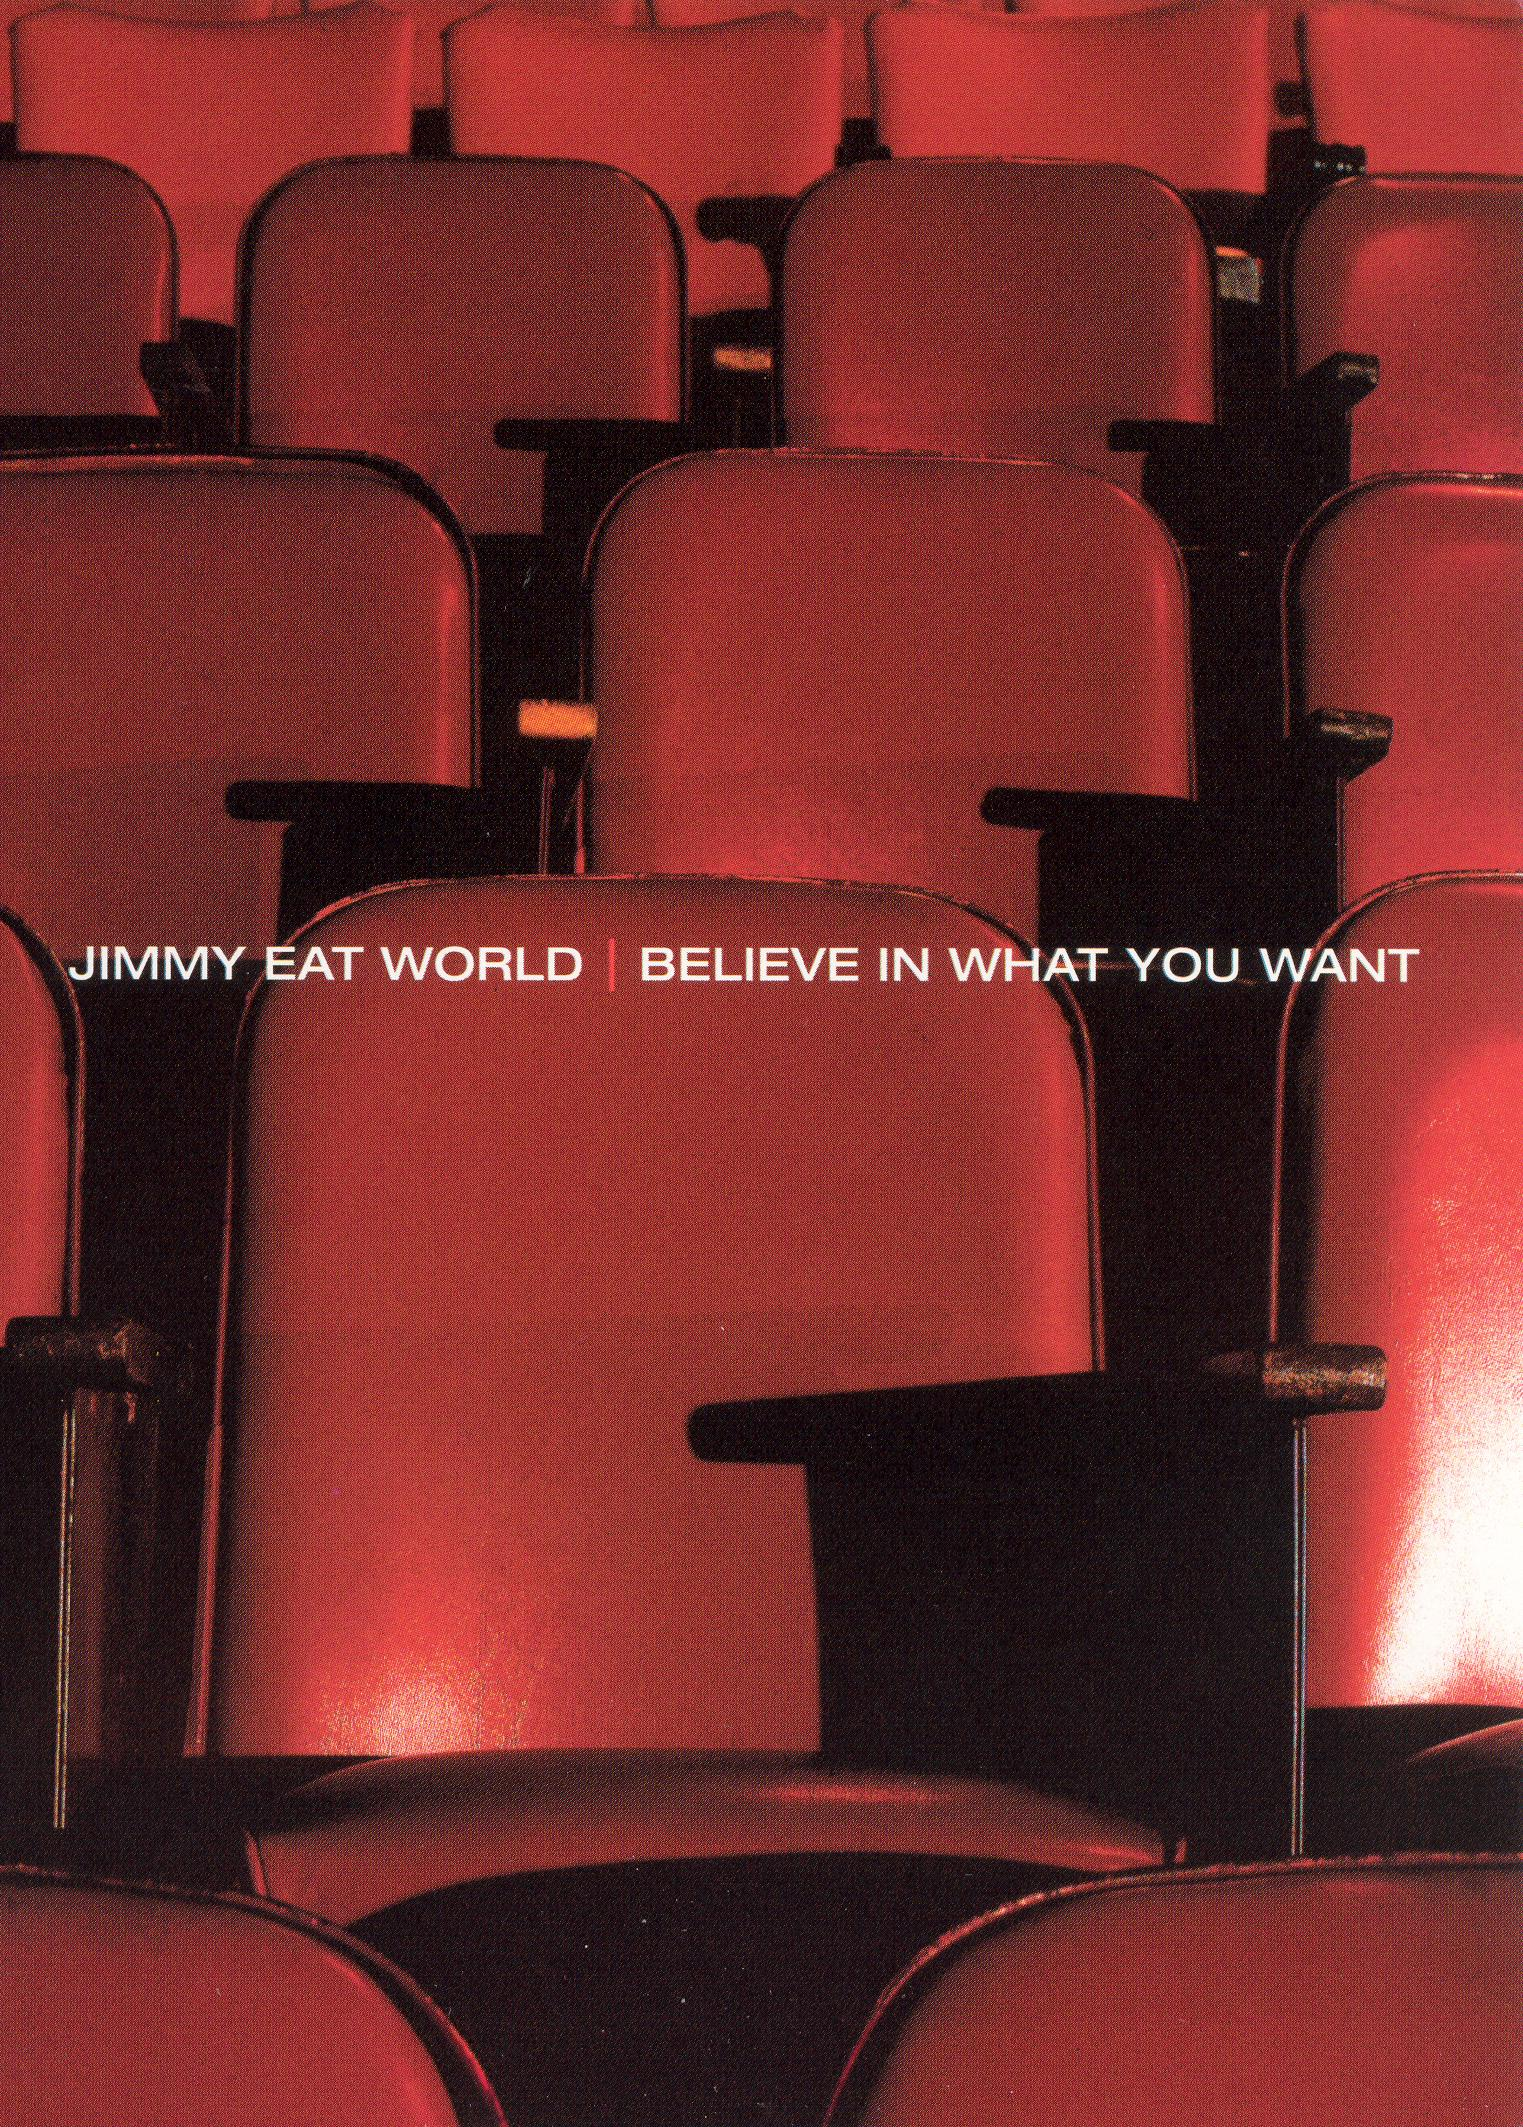 Jimmy Eat World: Believe in What You Want